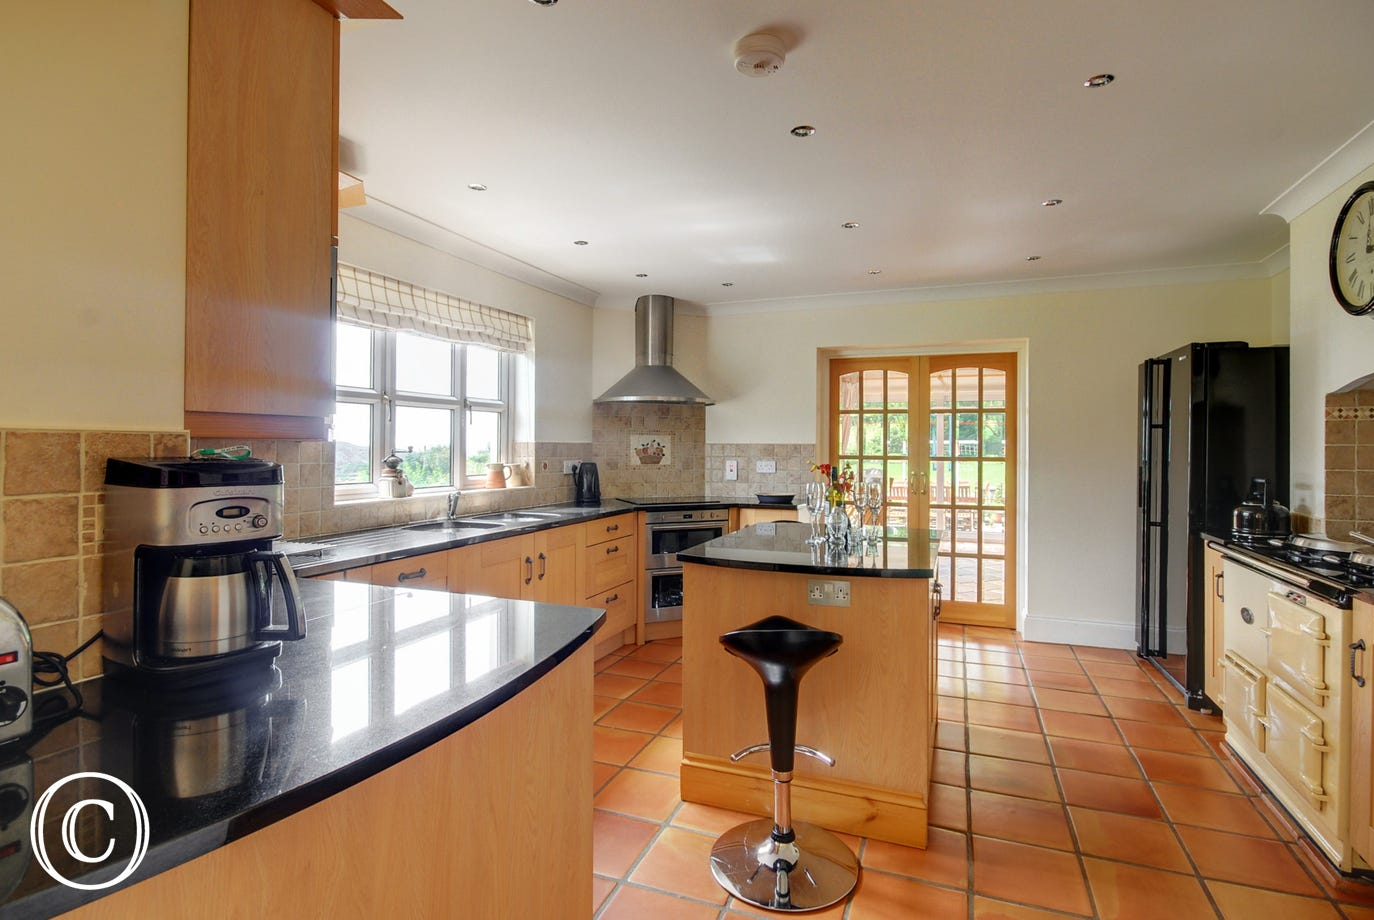 The kitchen is beautifully fitted in light oak complemented by polished granite worktops and terracotta stone tiled floor